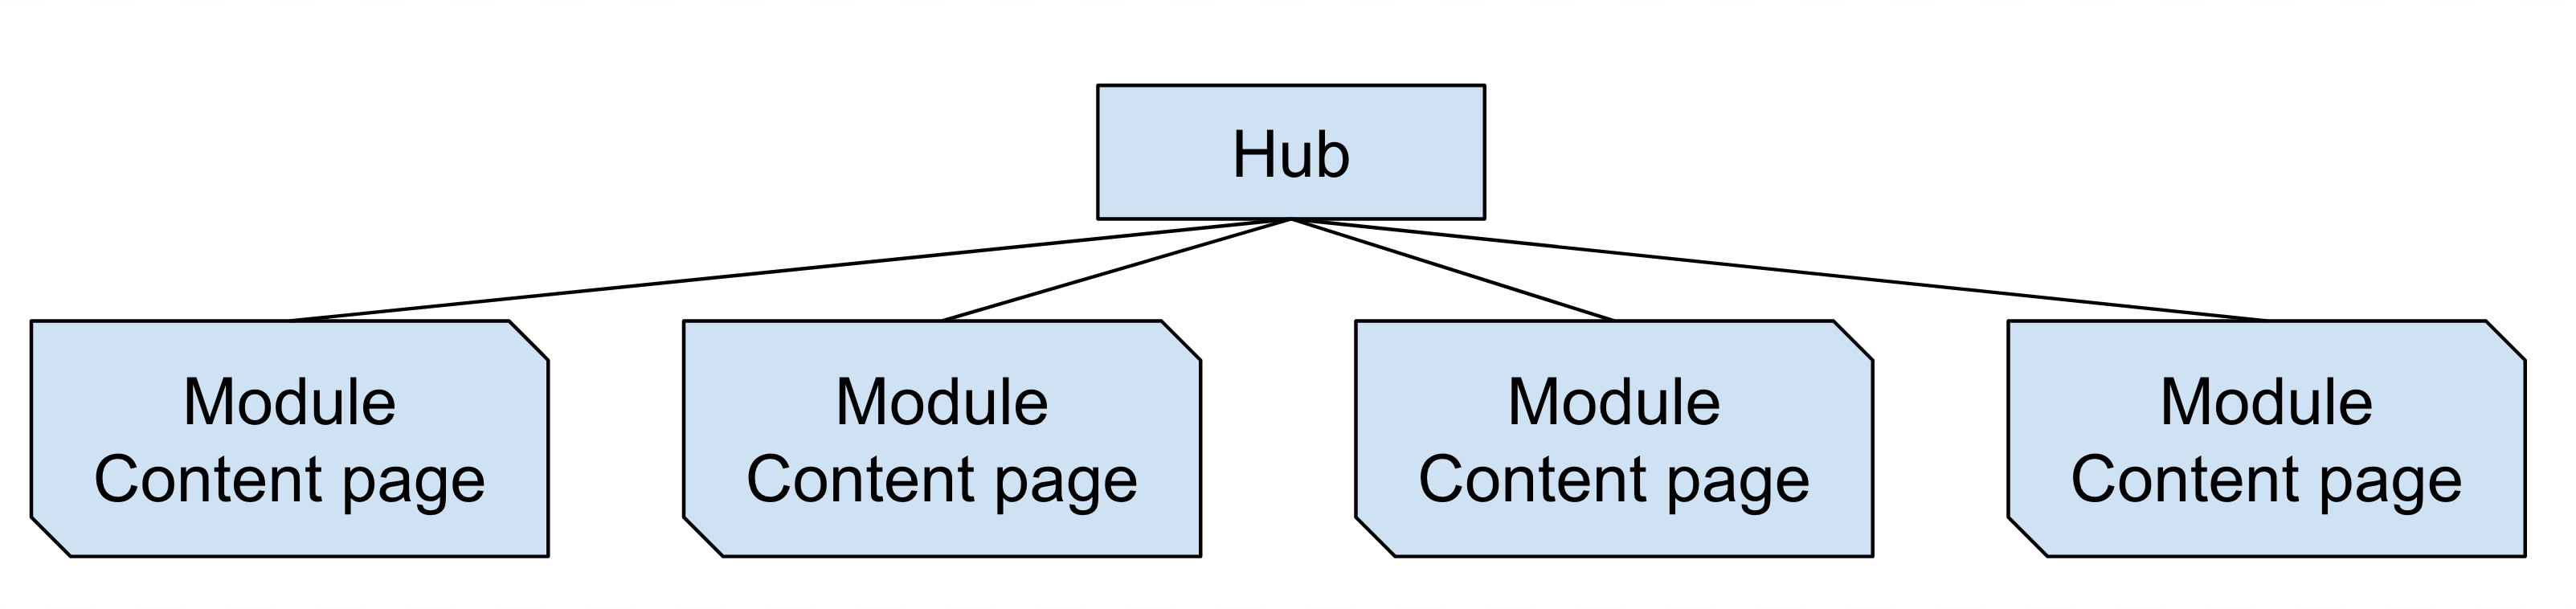 A flow chart depicting the structure of an example hub with module content pages. A box labelled 'Hub' is at the top. It connects to four boxes that are each labelled 'Module content page'.